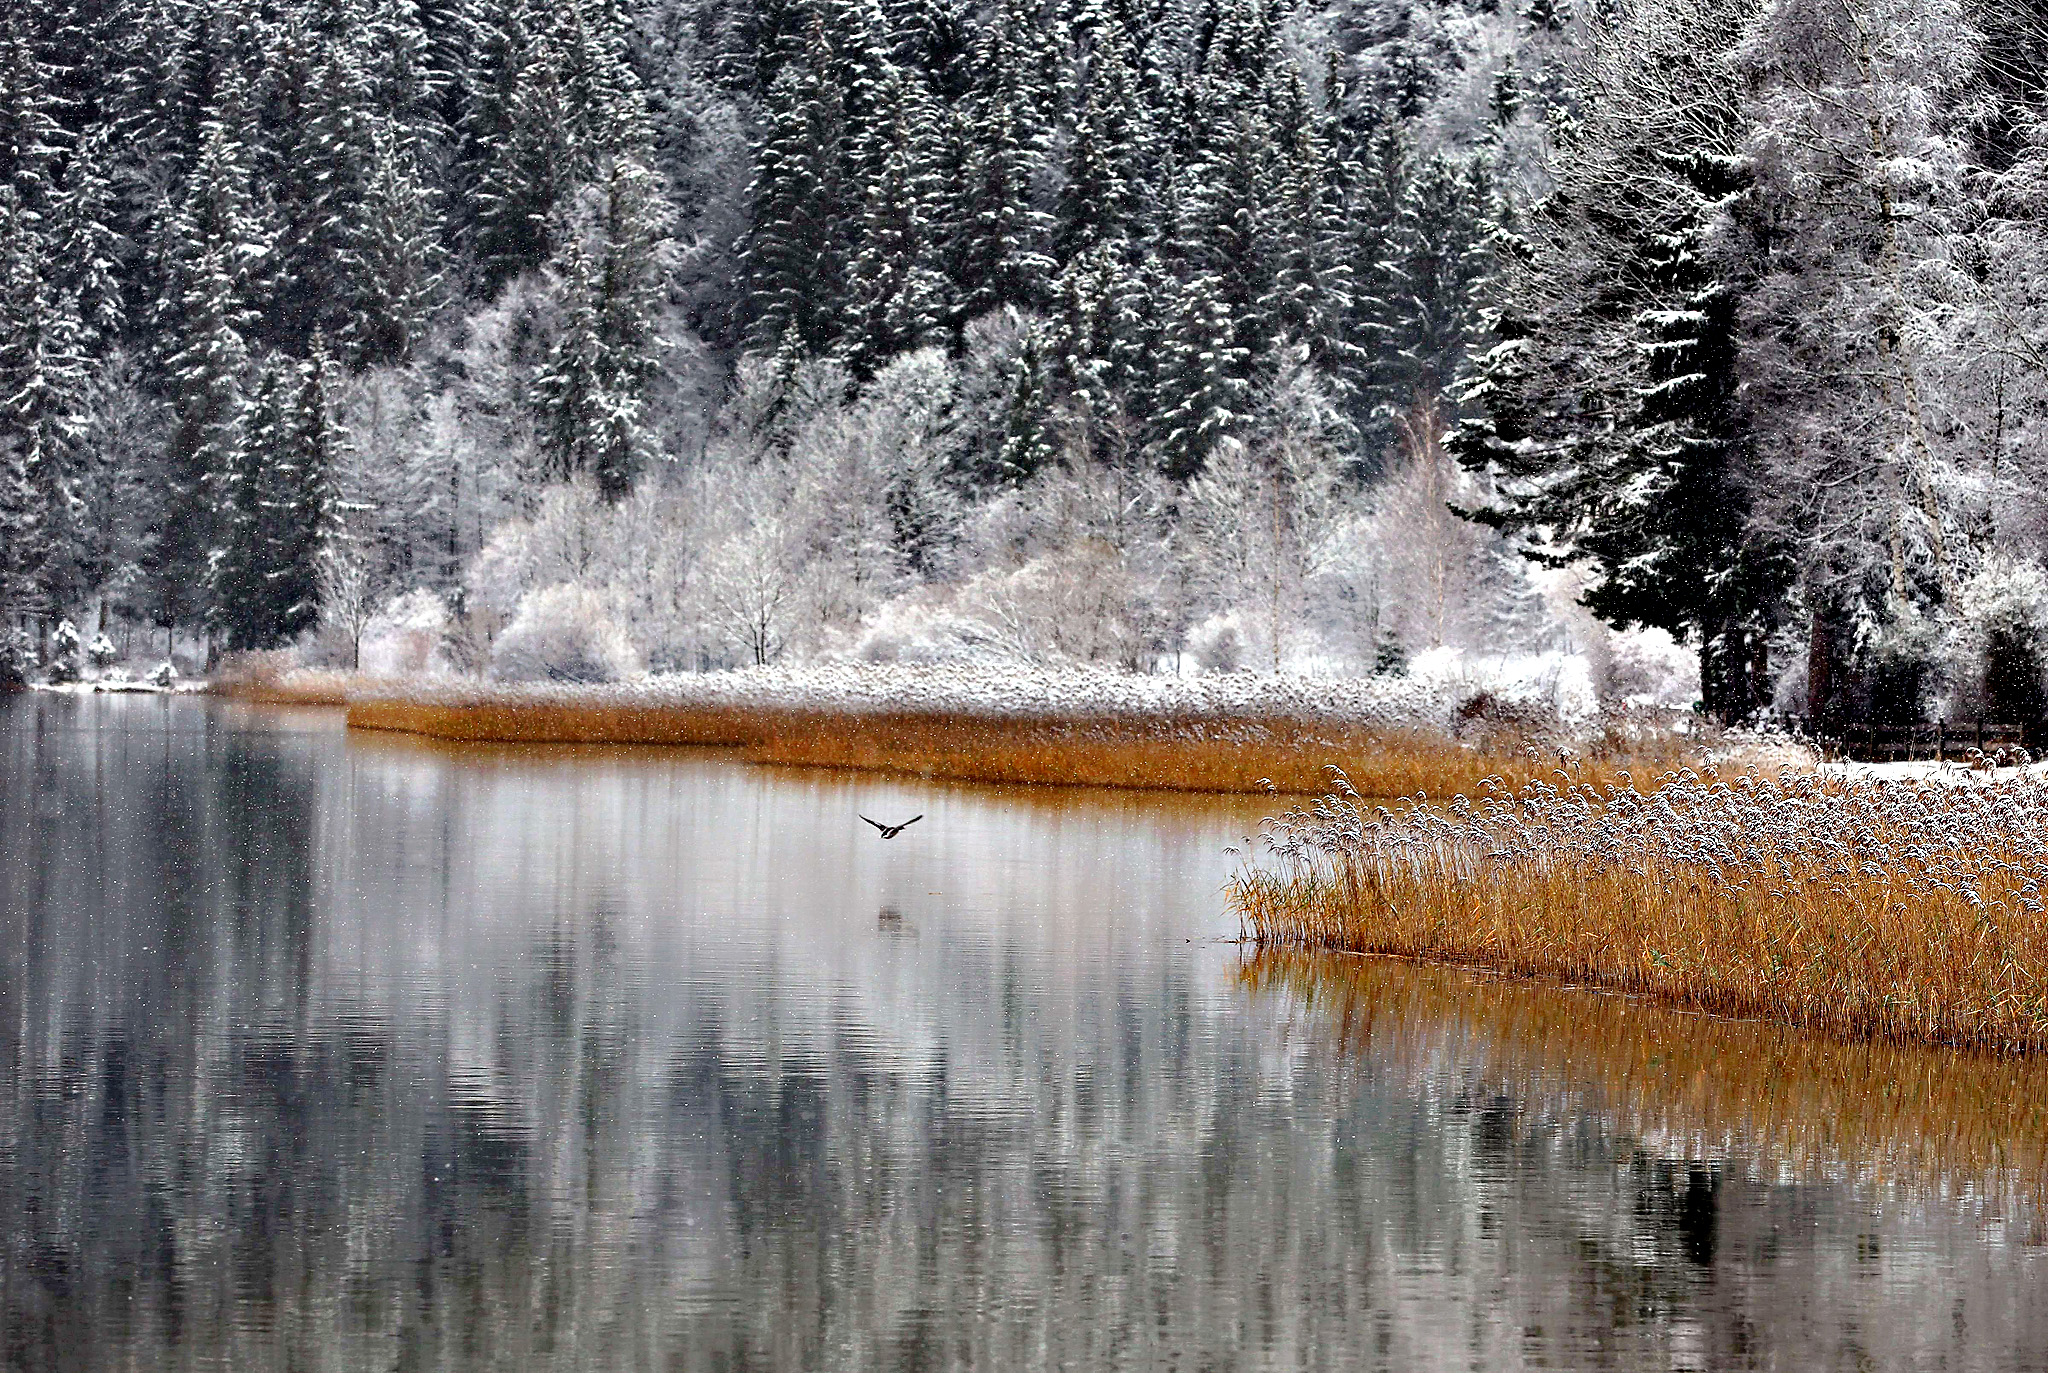 Snow-covered trees are mirrored in the water of the Weissensee lake near Fuessen, southern Germany, on Thursday.